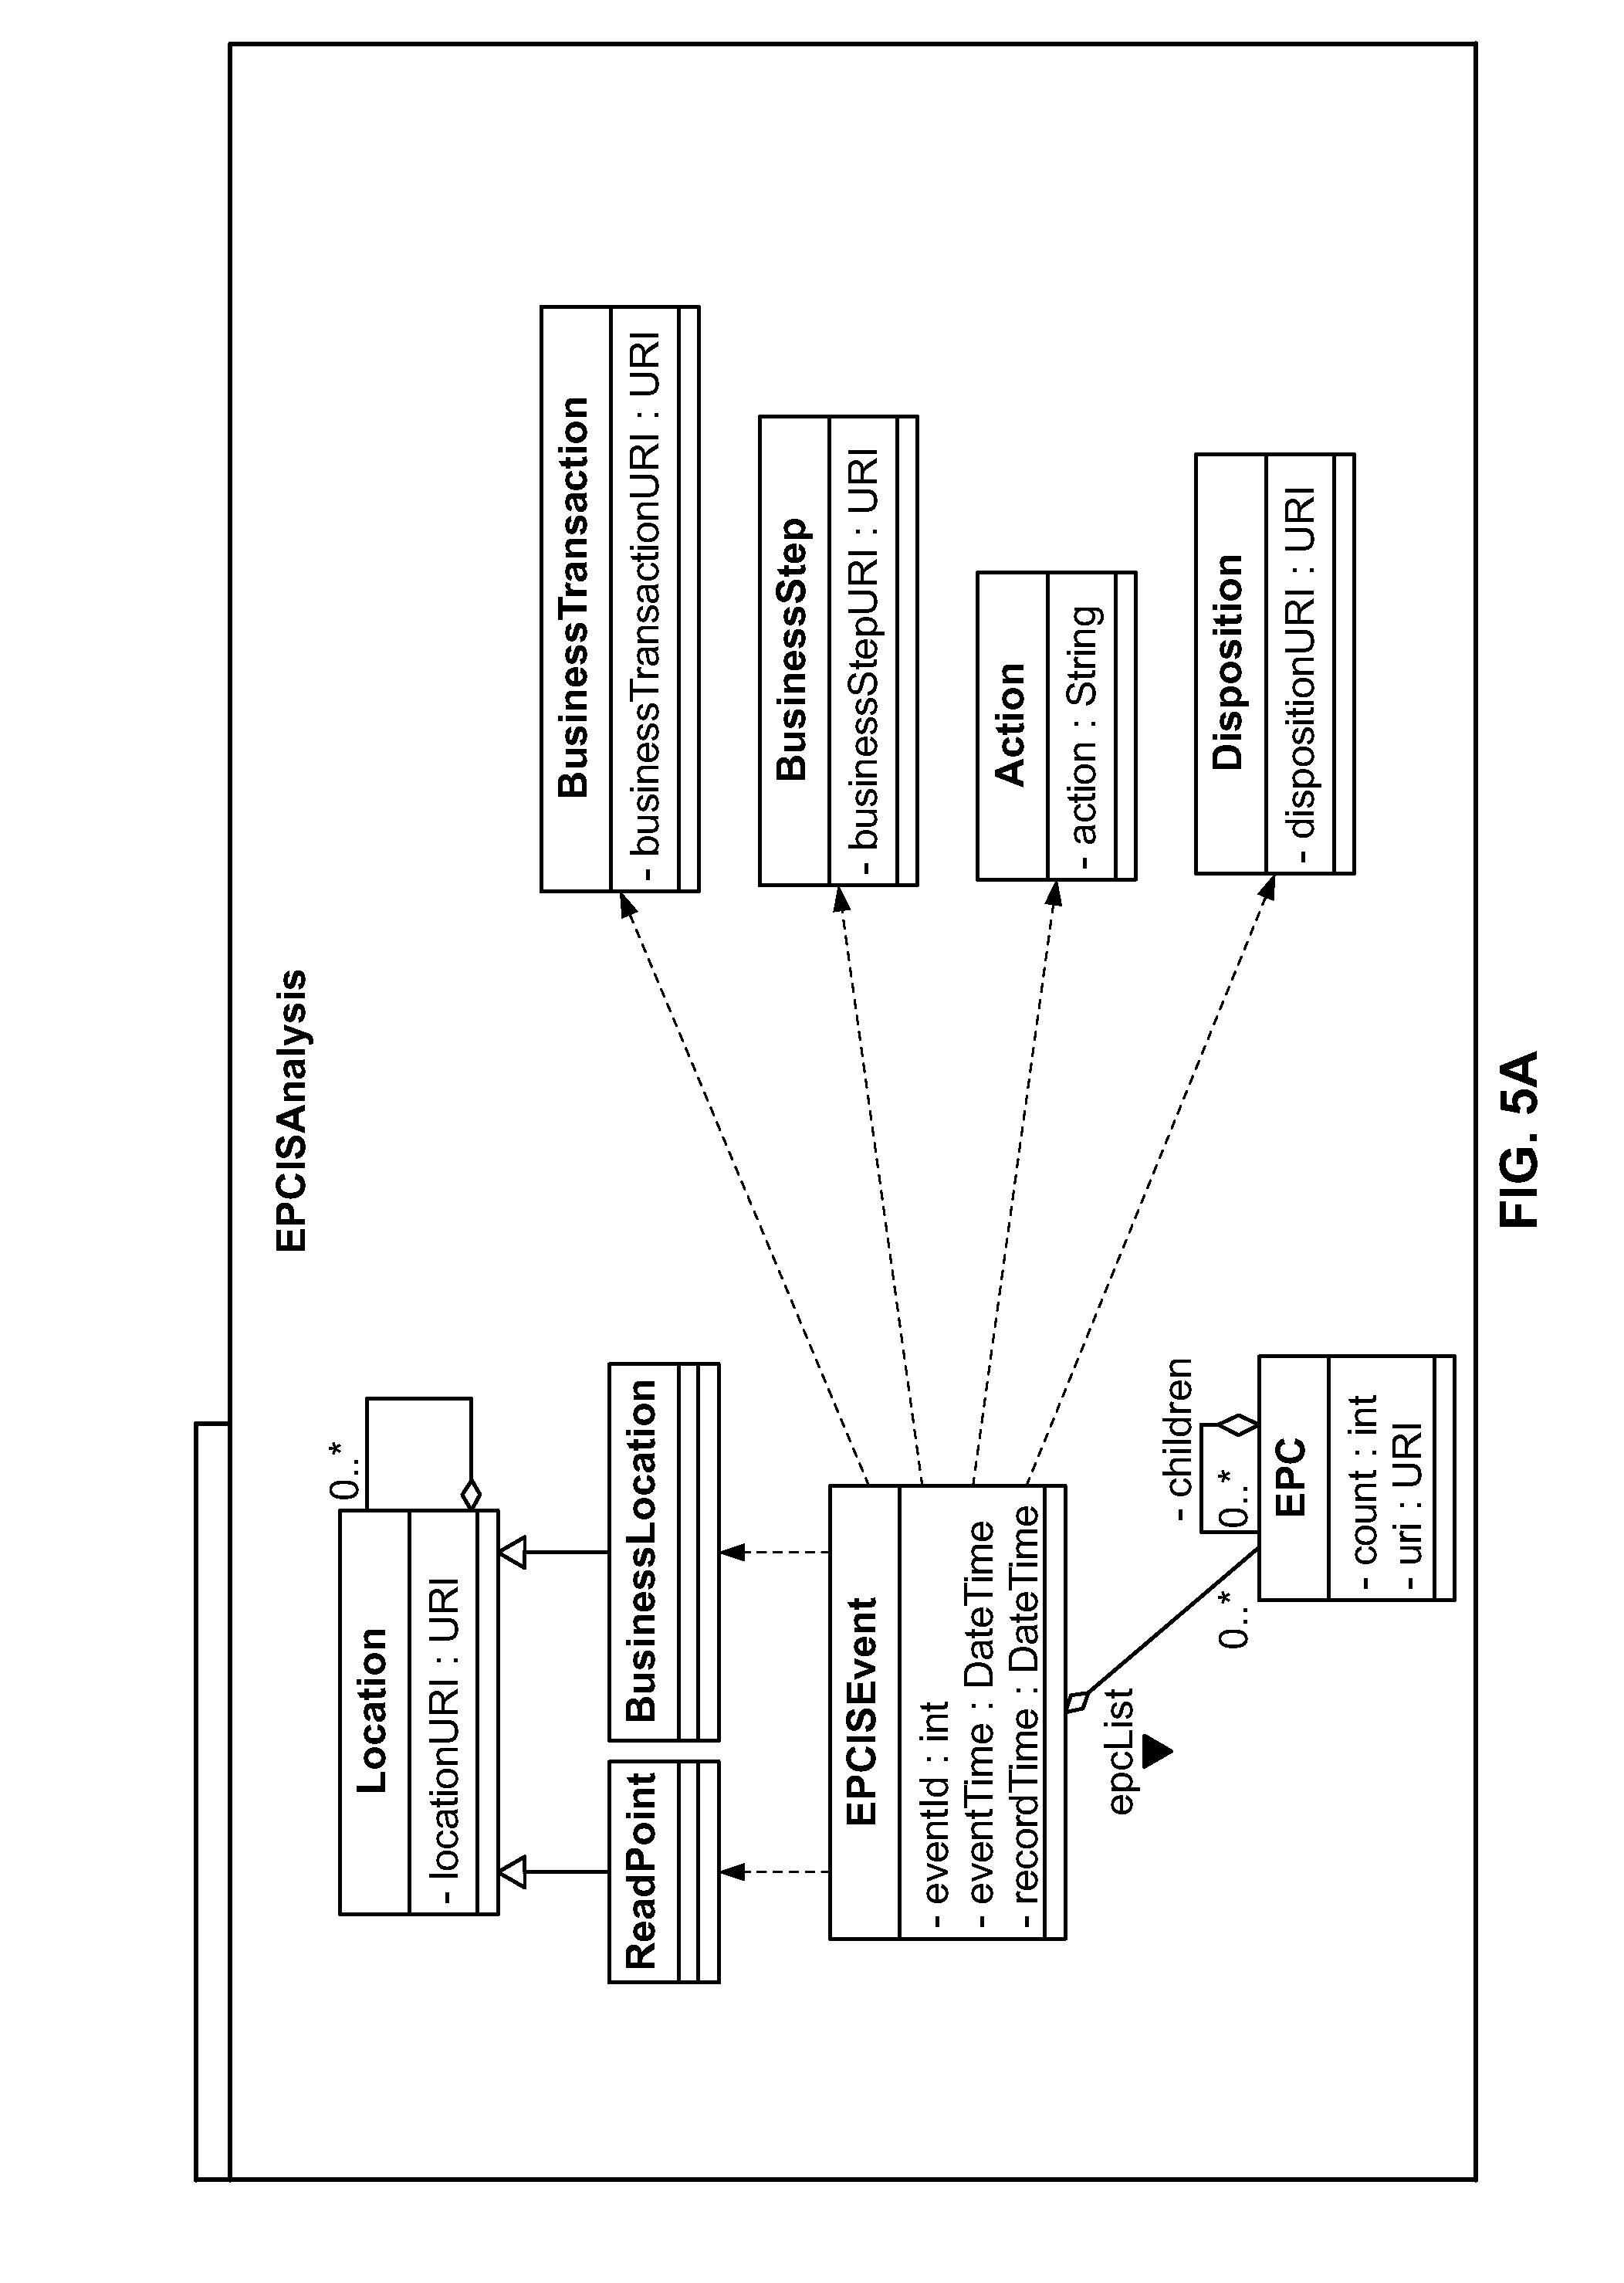 Intellectual Property Links compiled by Patent Attorney